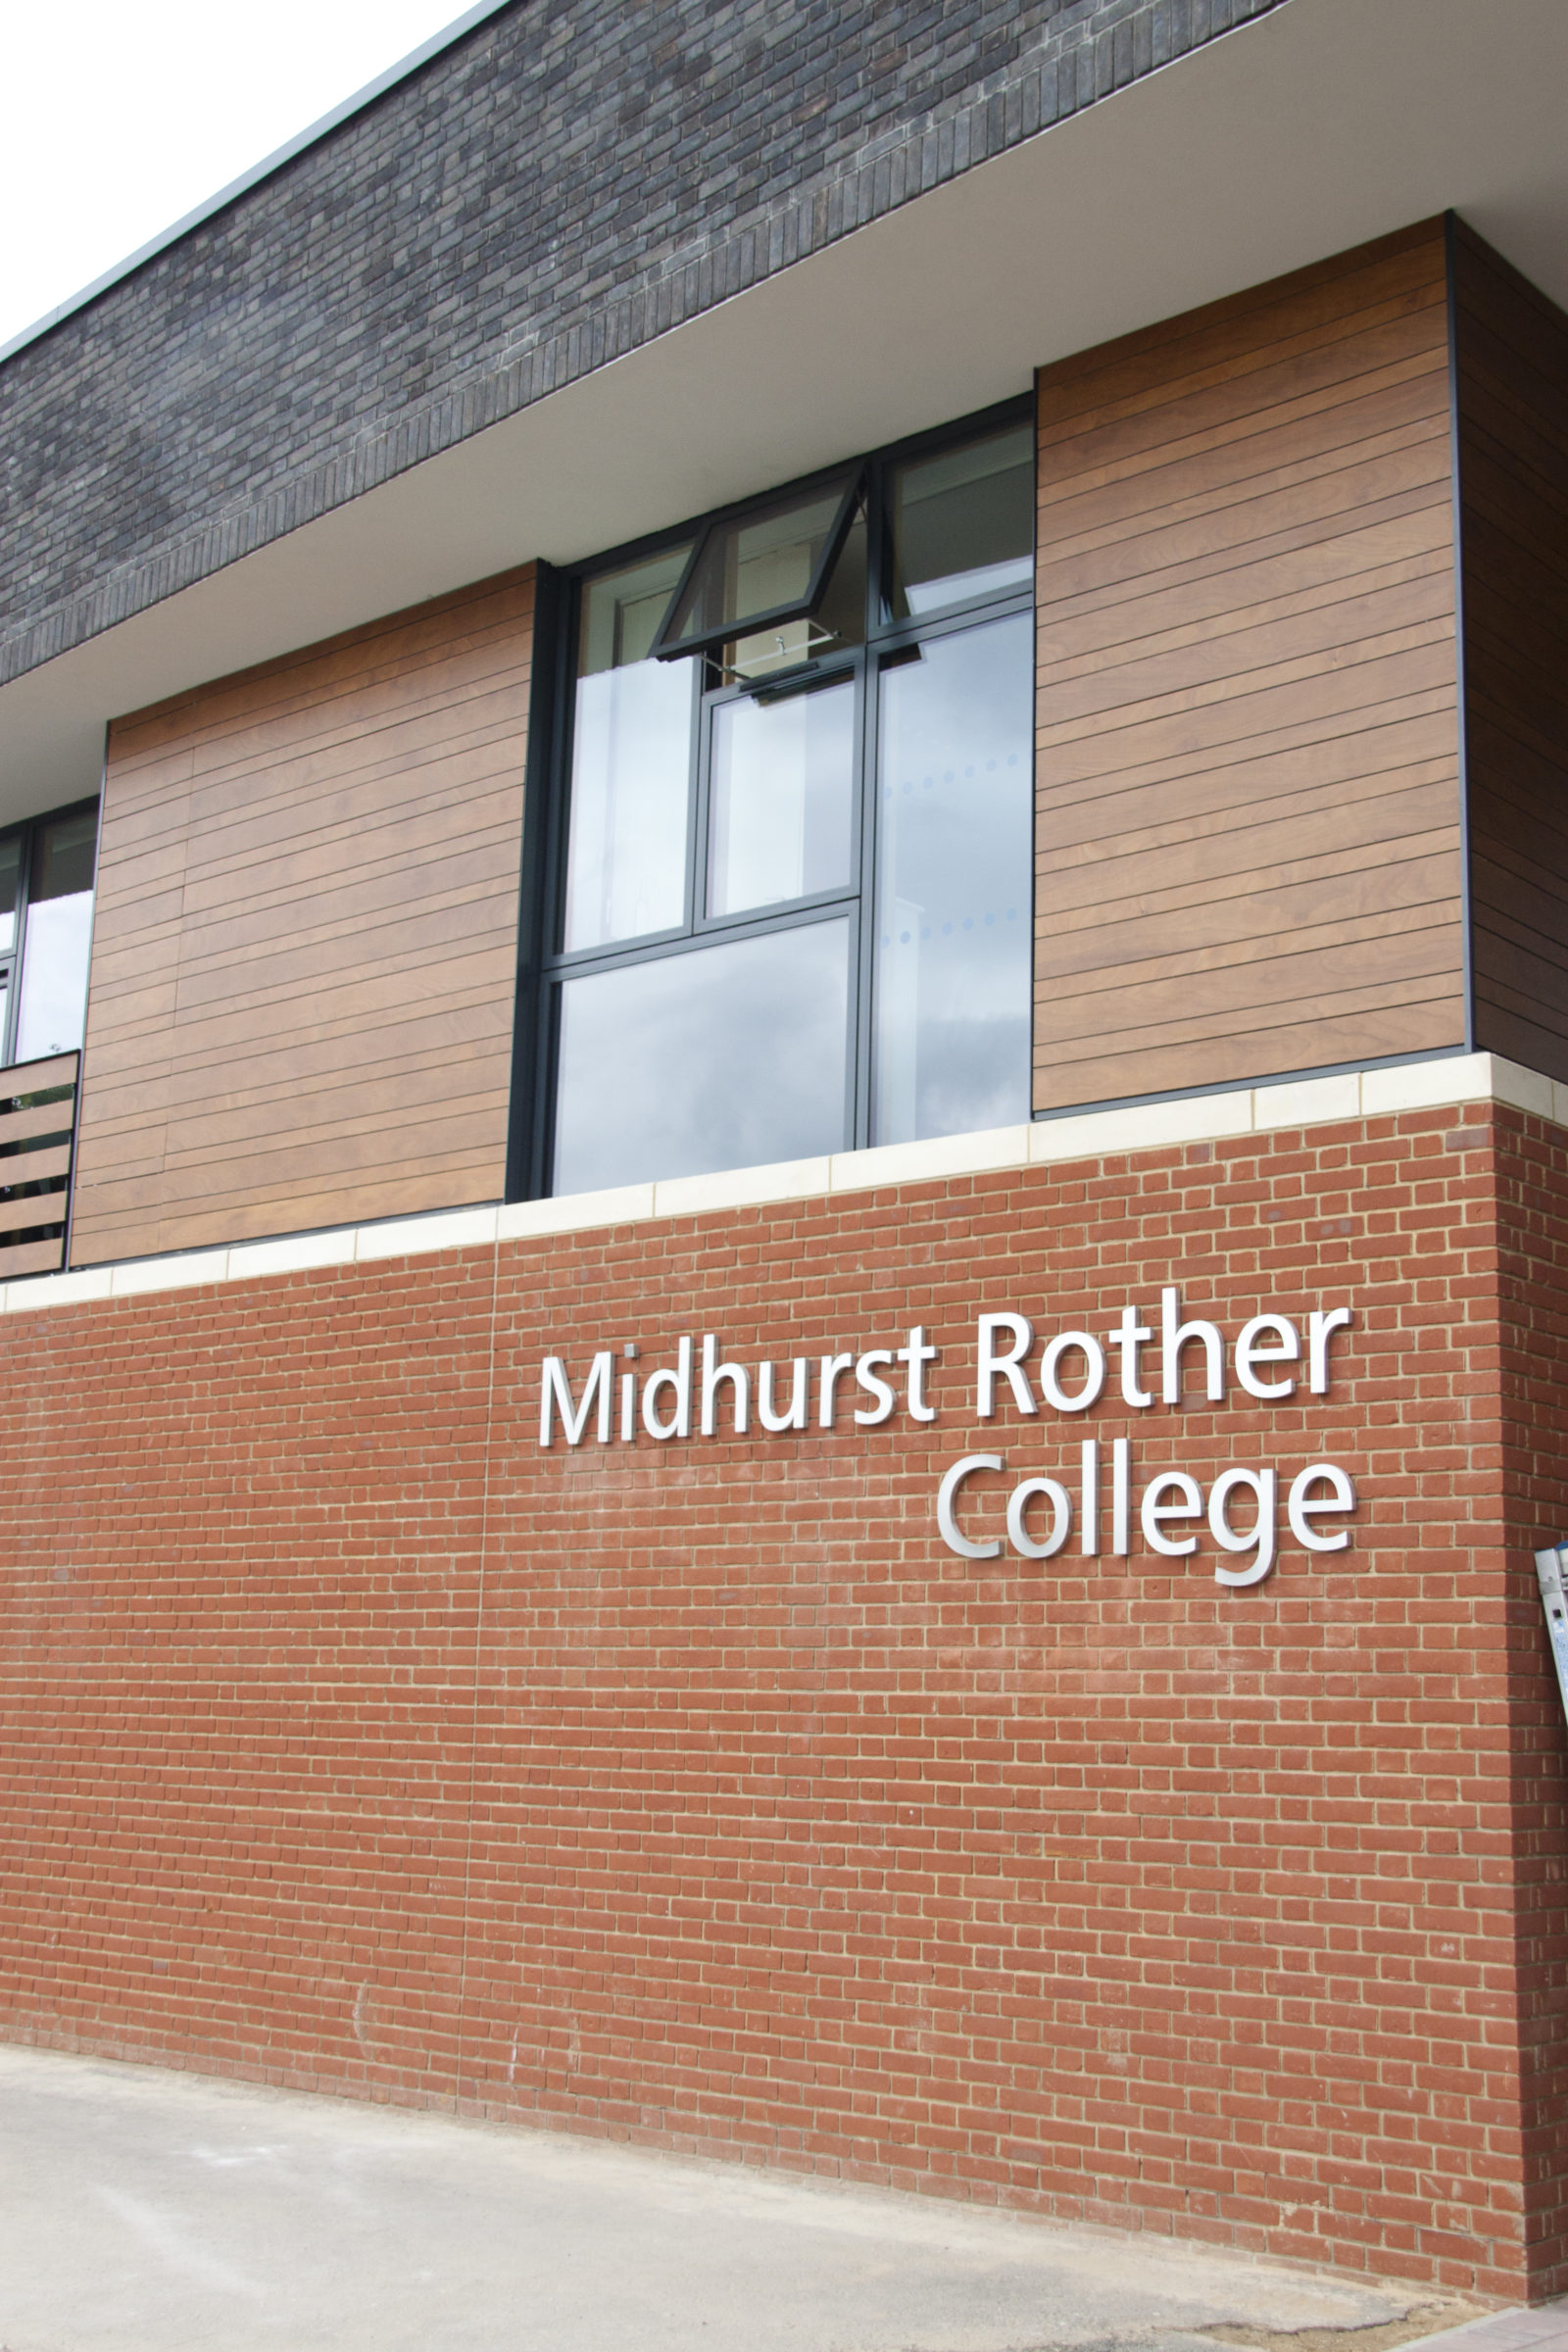 Midhurst Rother College and Shoreham Academy